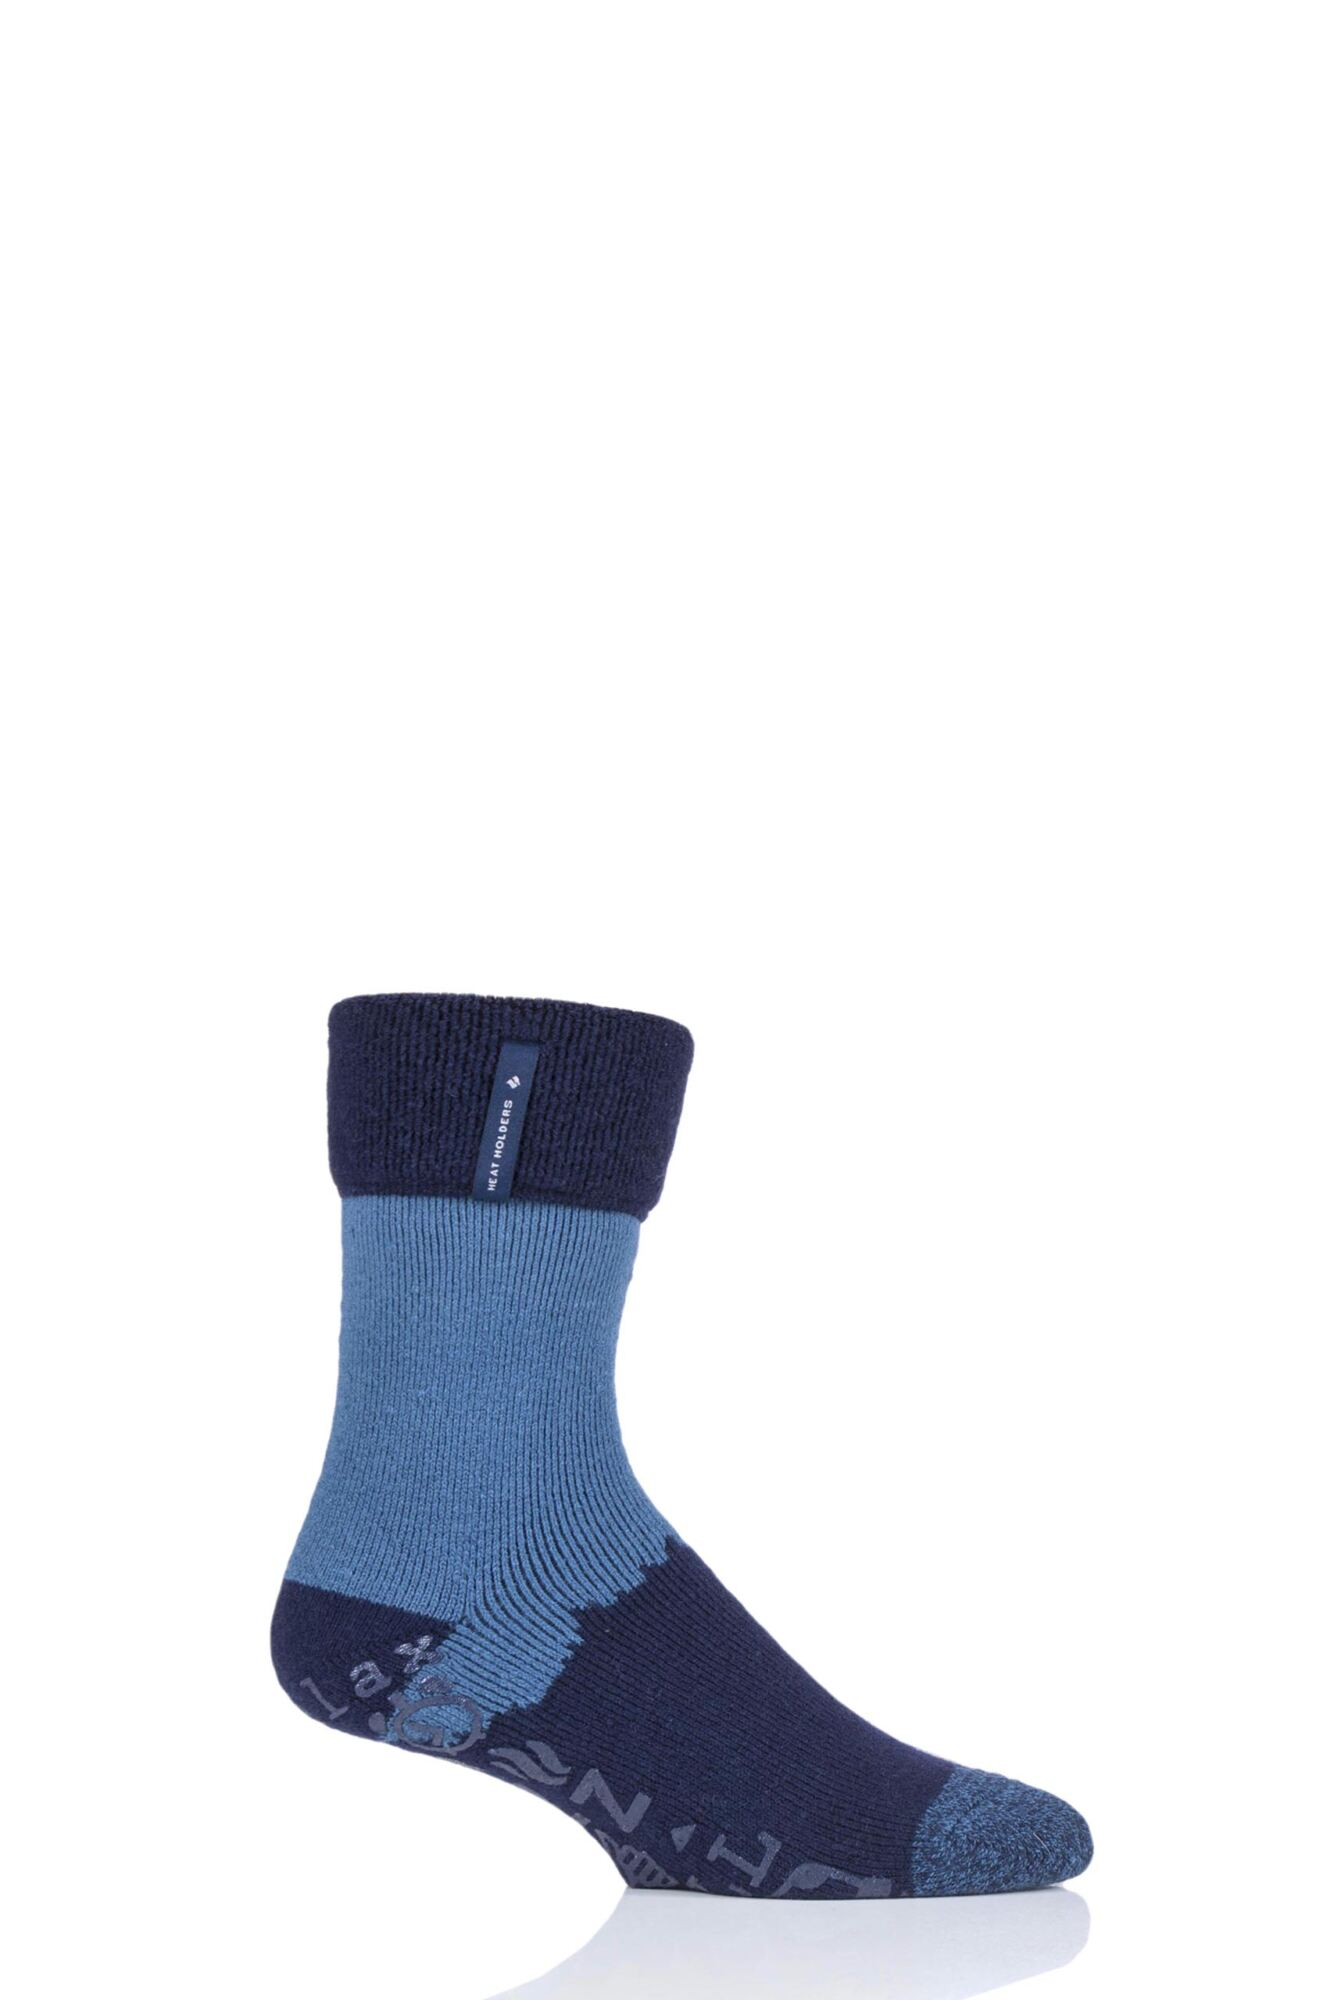 1 Pair Lounge Lite Socks Men's - Heat Holders